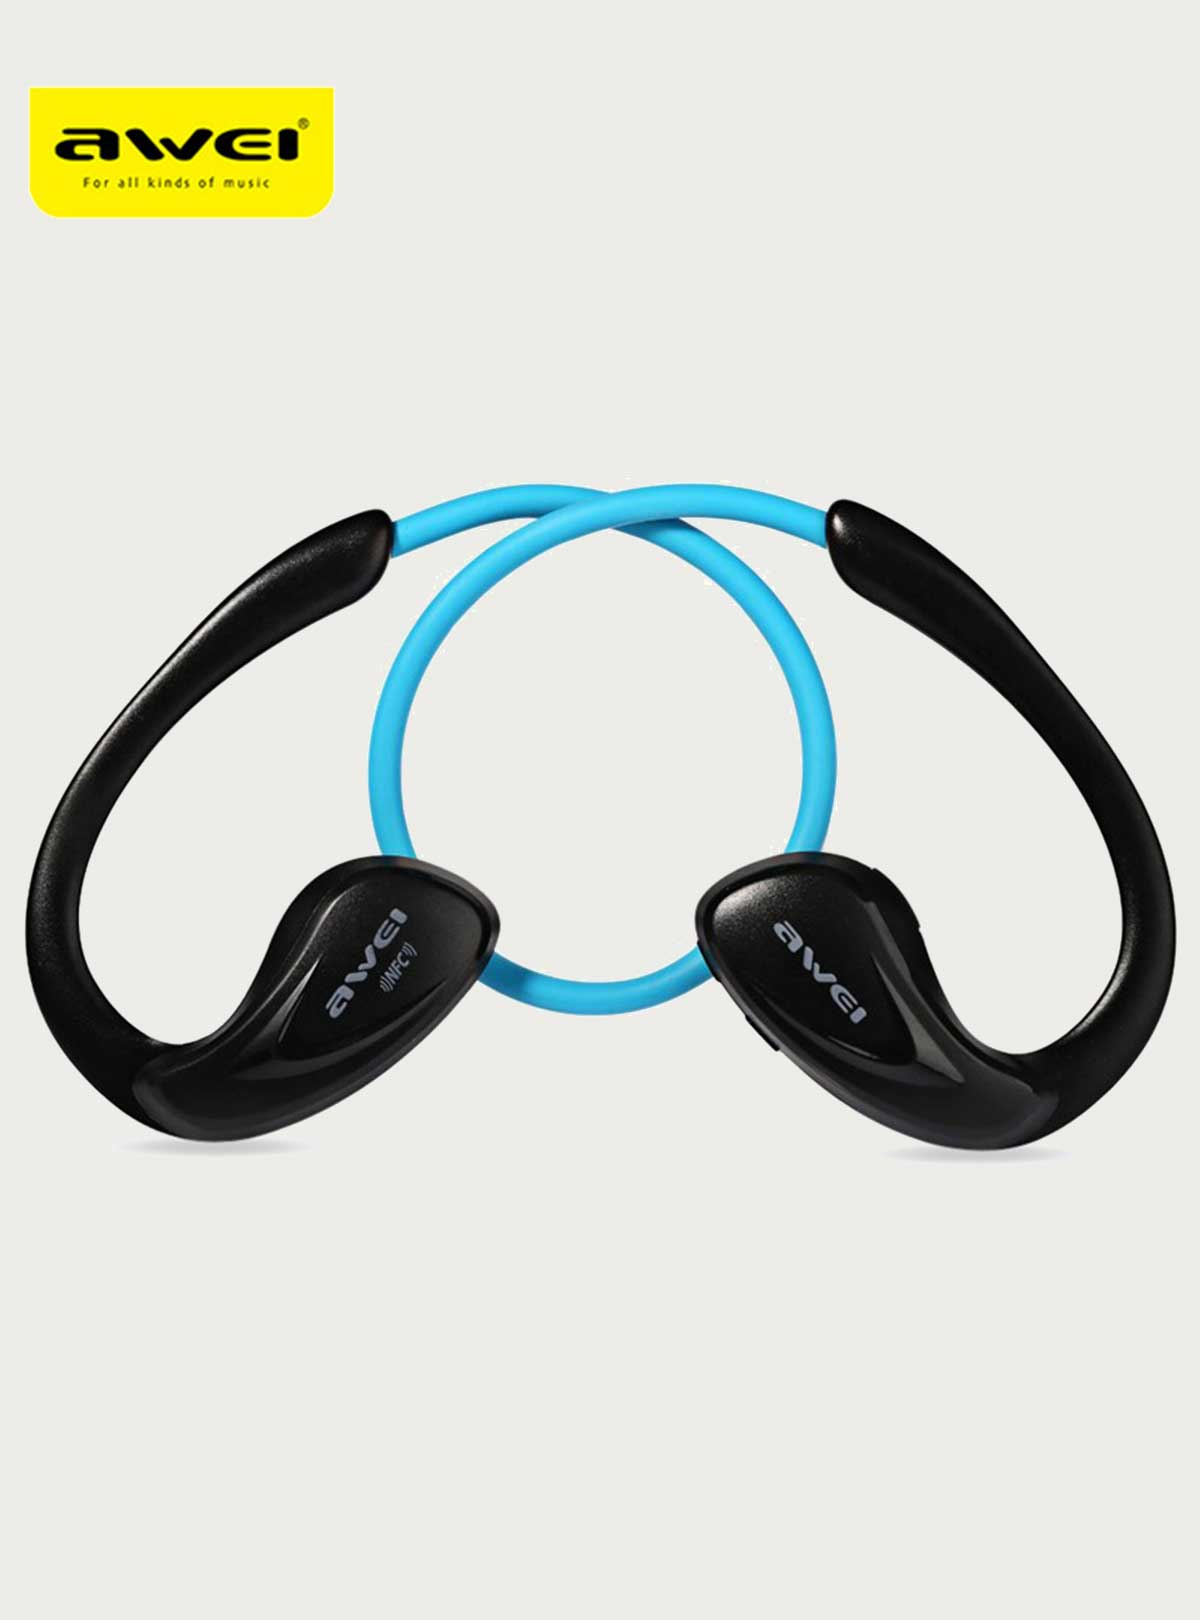 Awei A880BL Wireless Sports Earphones headphone Bluetooth V4.0 Earhook headset For Mobile phone